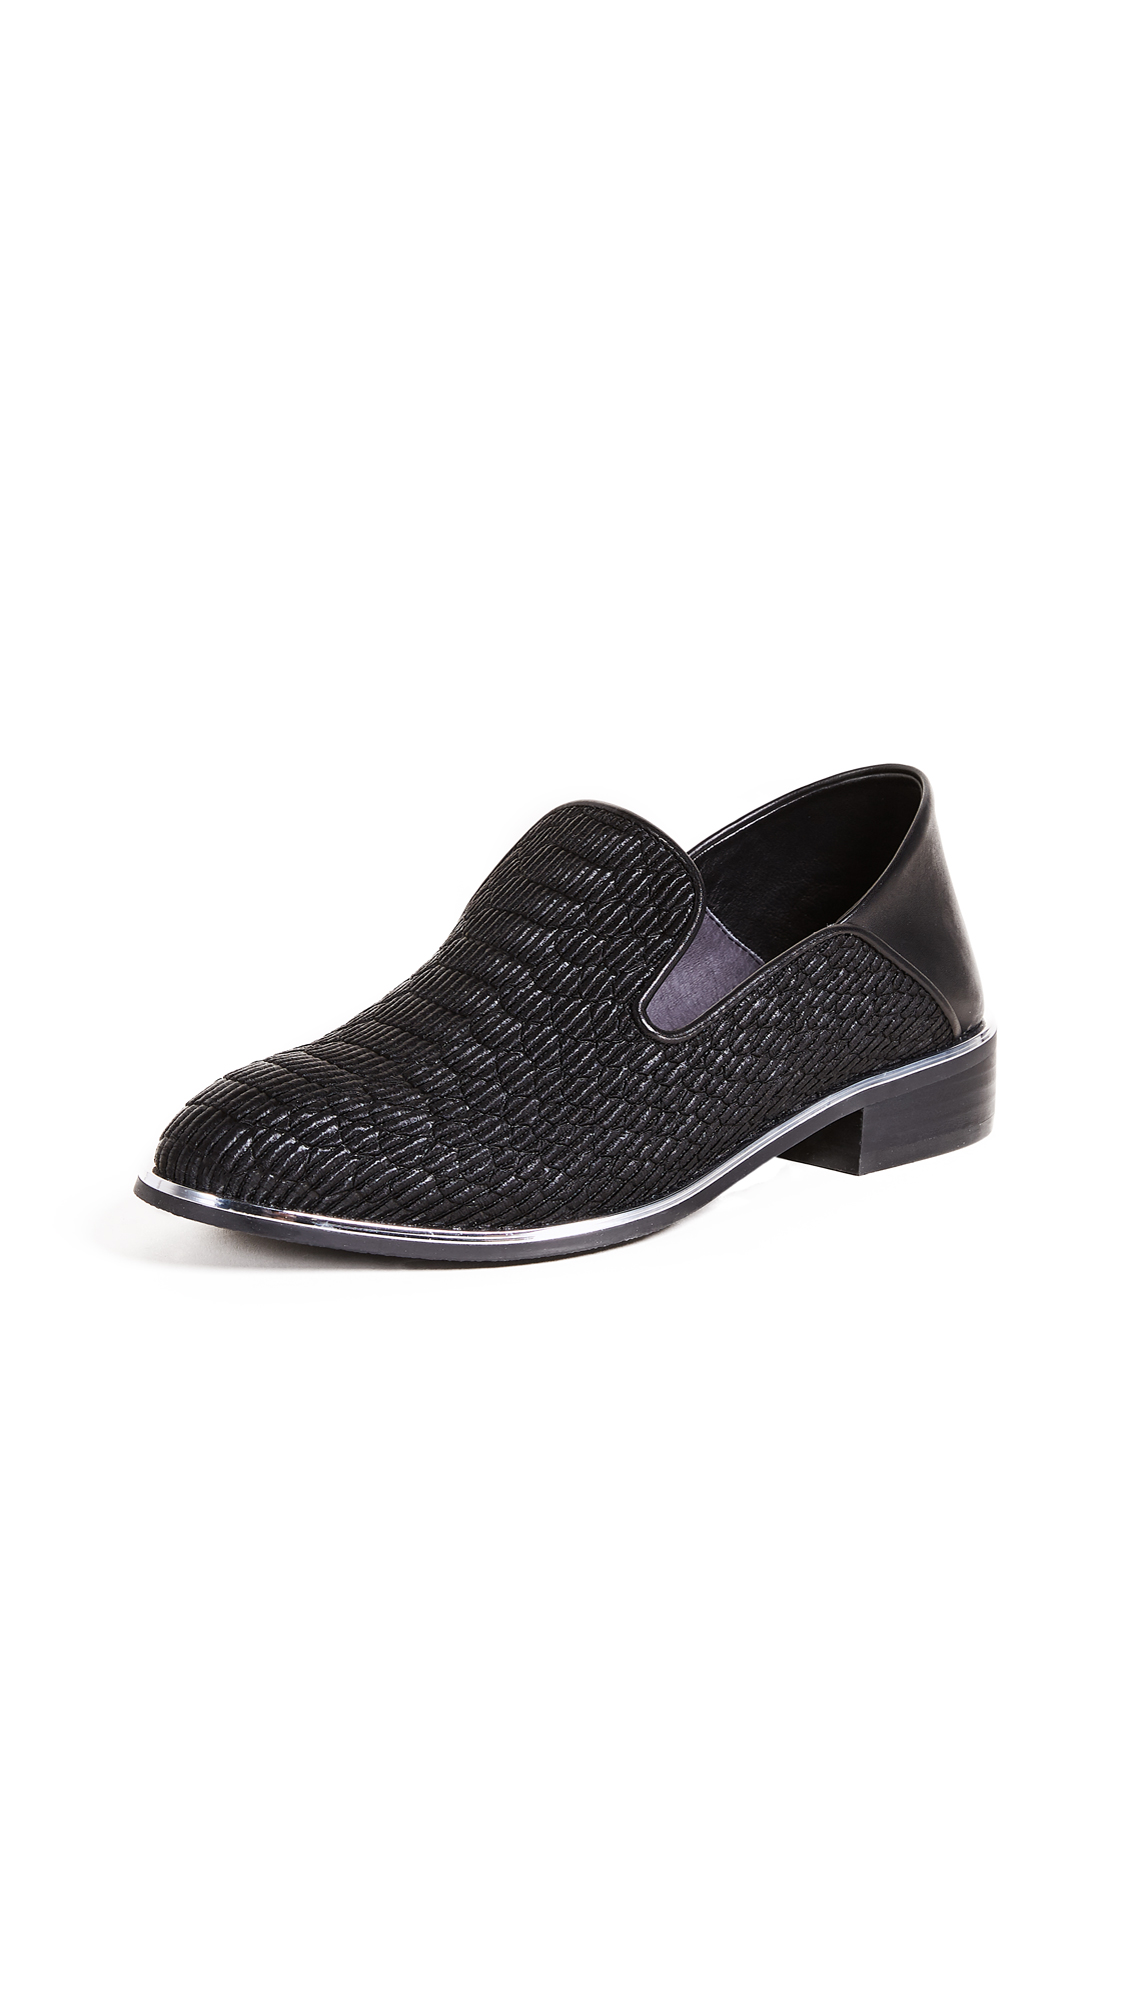 United Nude Jamie Loafers - Black